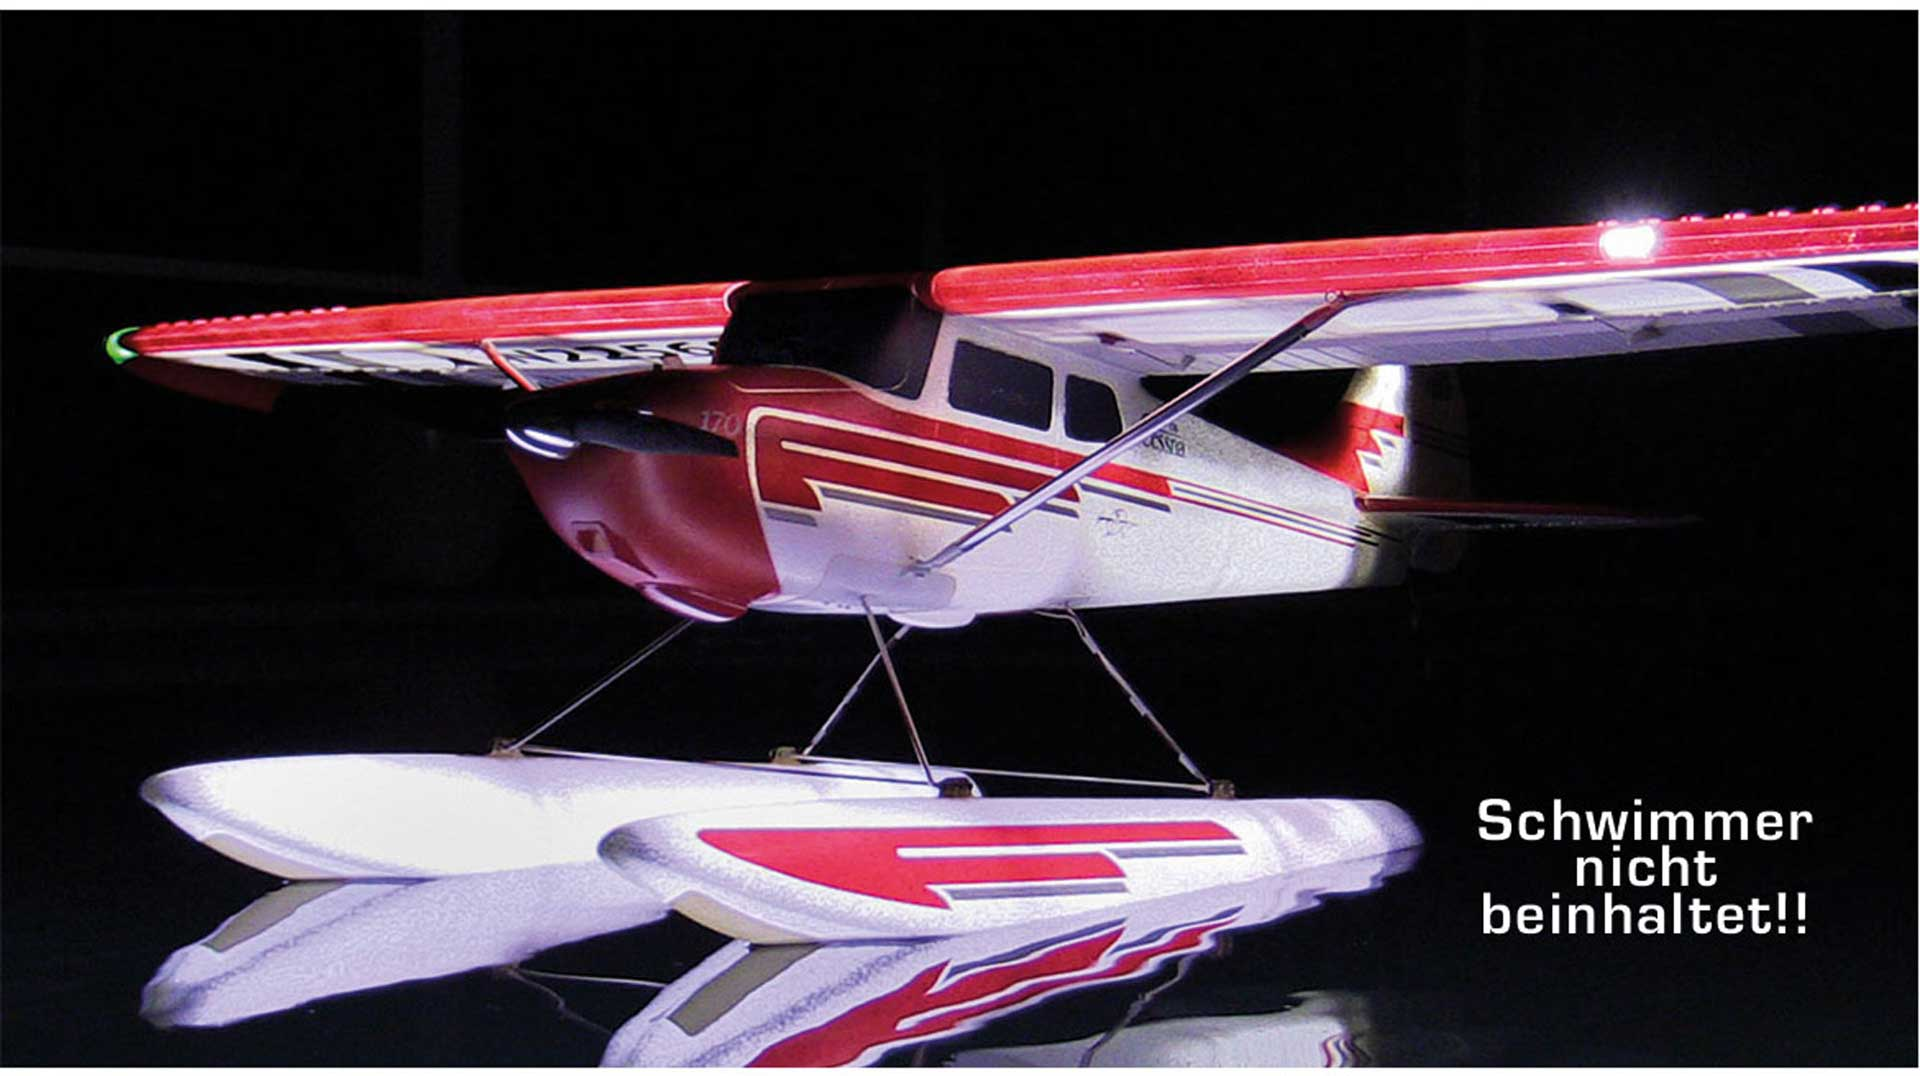 PREMIER AIRCRAFT CESSNA 170 SUPER PNP NIGHT WITH AURA 8, POSITION AND NIGHT LIGHTING